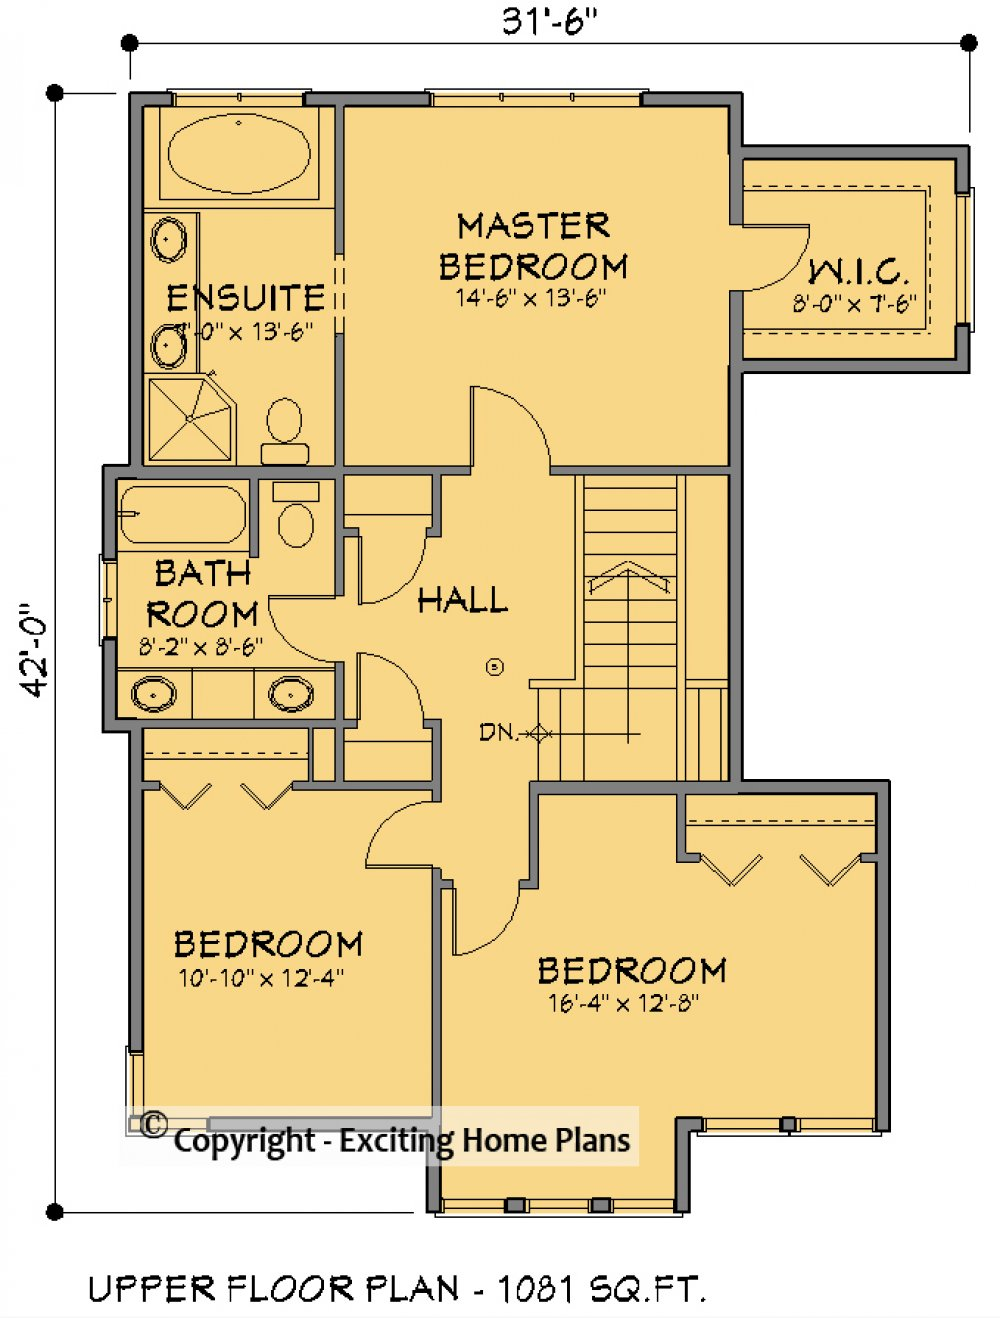 Browse House Plans and Home Designs by Exciting Home Plans on house clip art, house rendering, house elevations, house design, house building, house framing, house roof, house construction, house drawings, house types, house blueprints, house foundation, house styles, house painting, house layout, house structure, house exterior, house models, house maps, house plants,